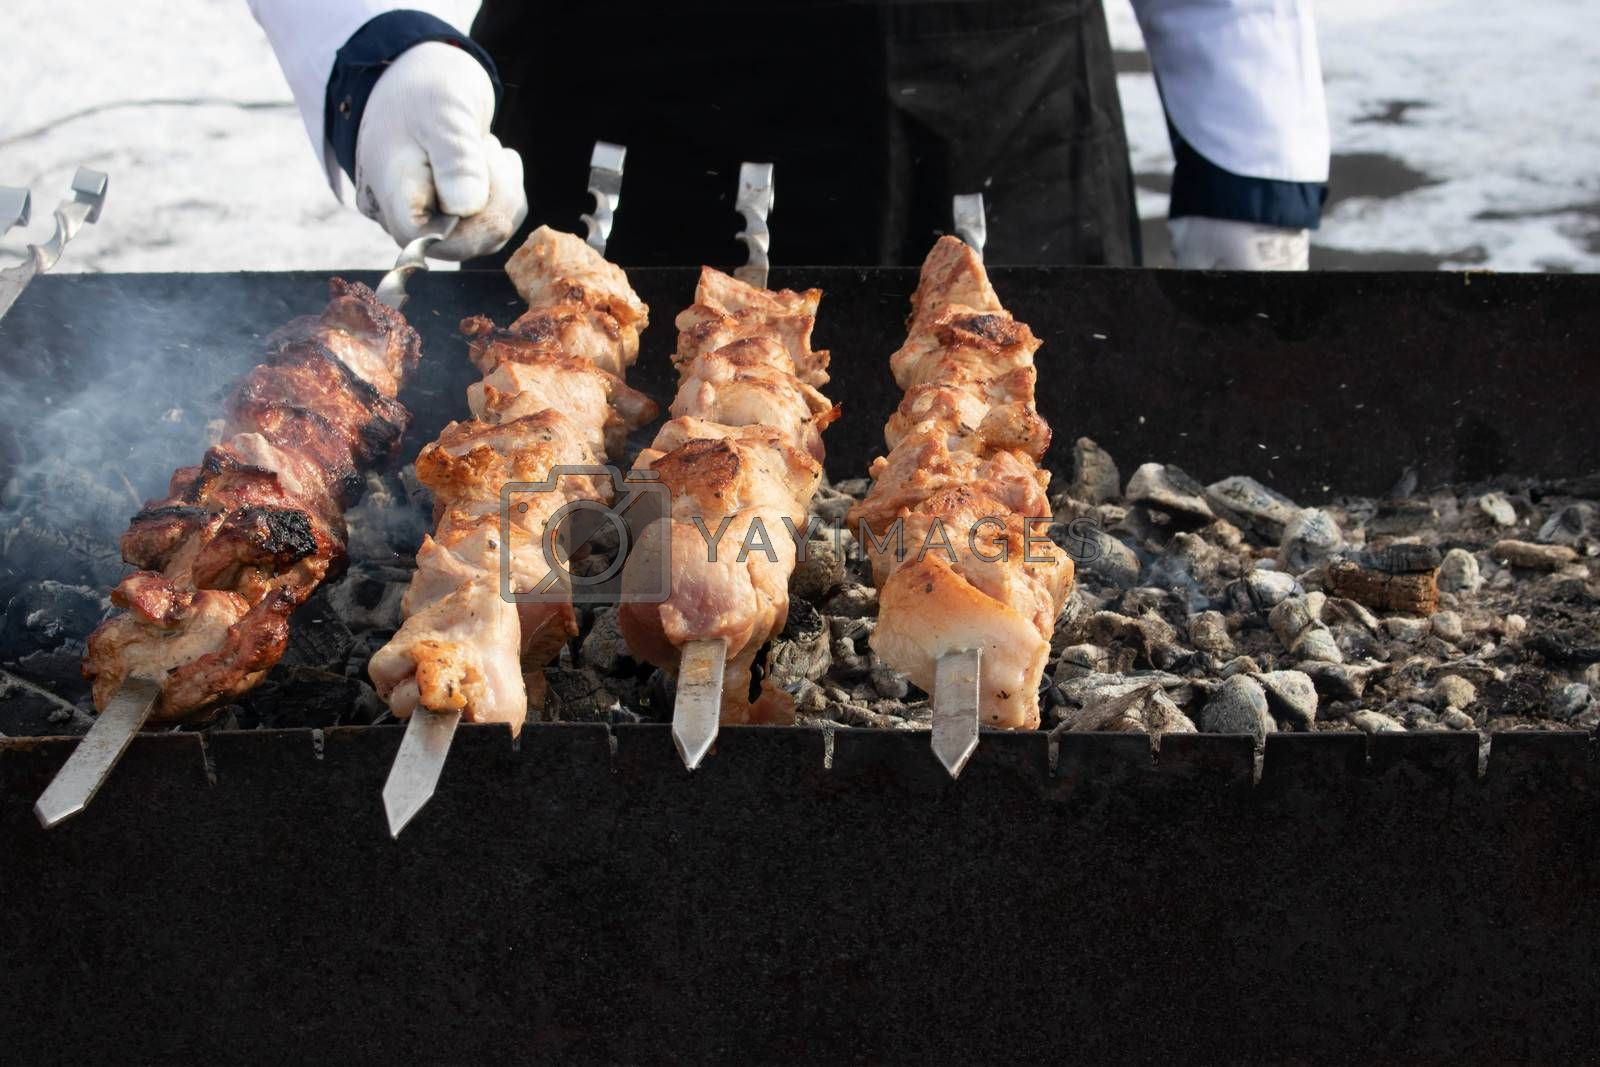 Traditional Russian shashlik on a barbecue skewer, cooking outdoor activities meat on skewers